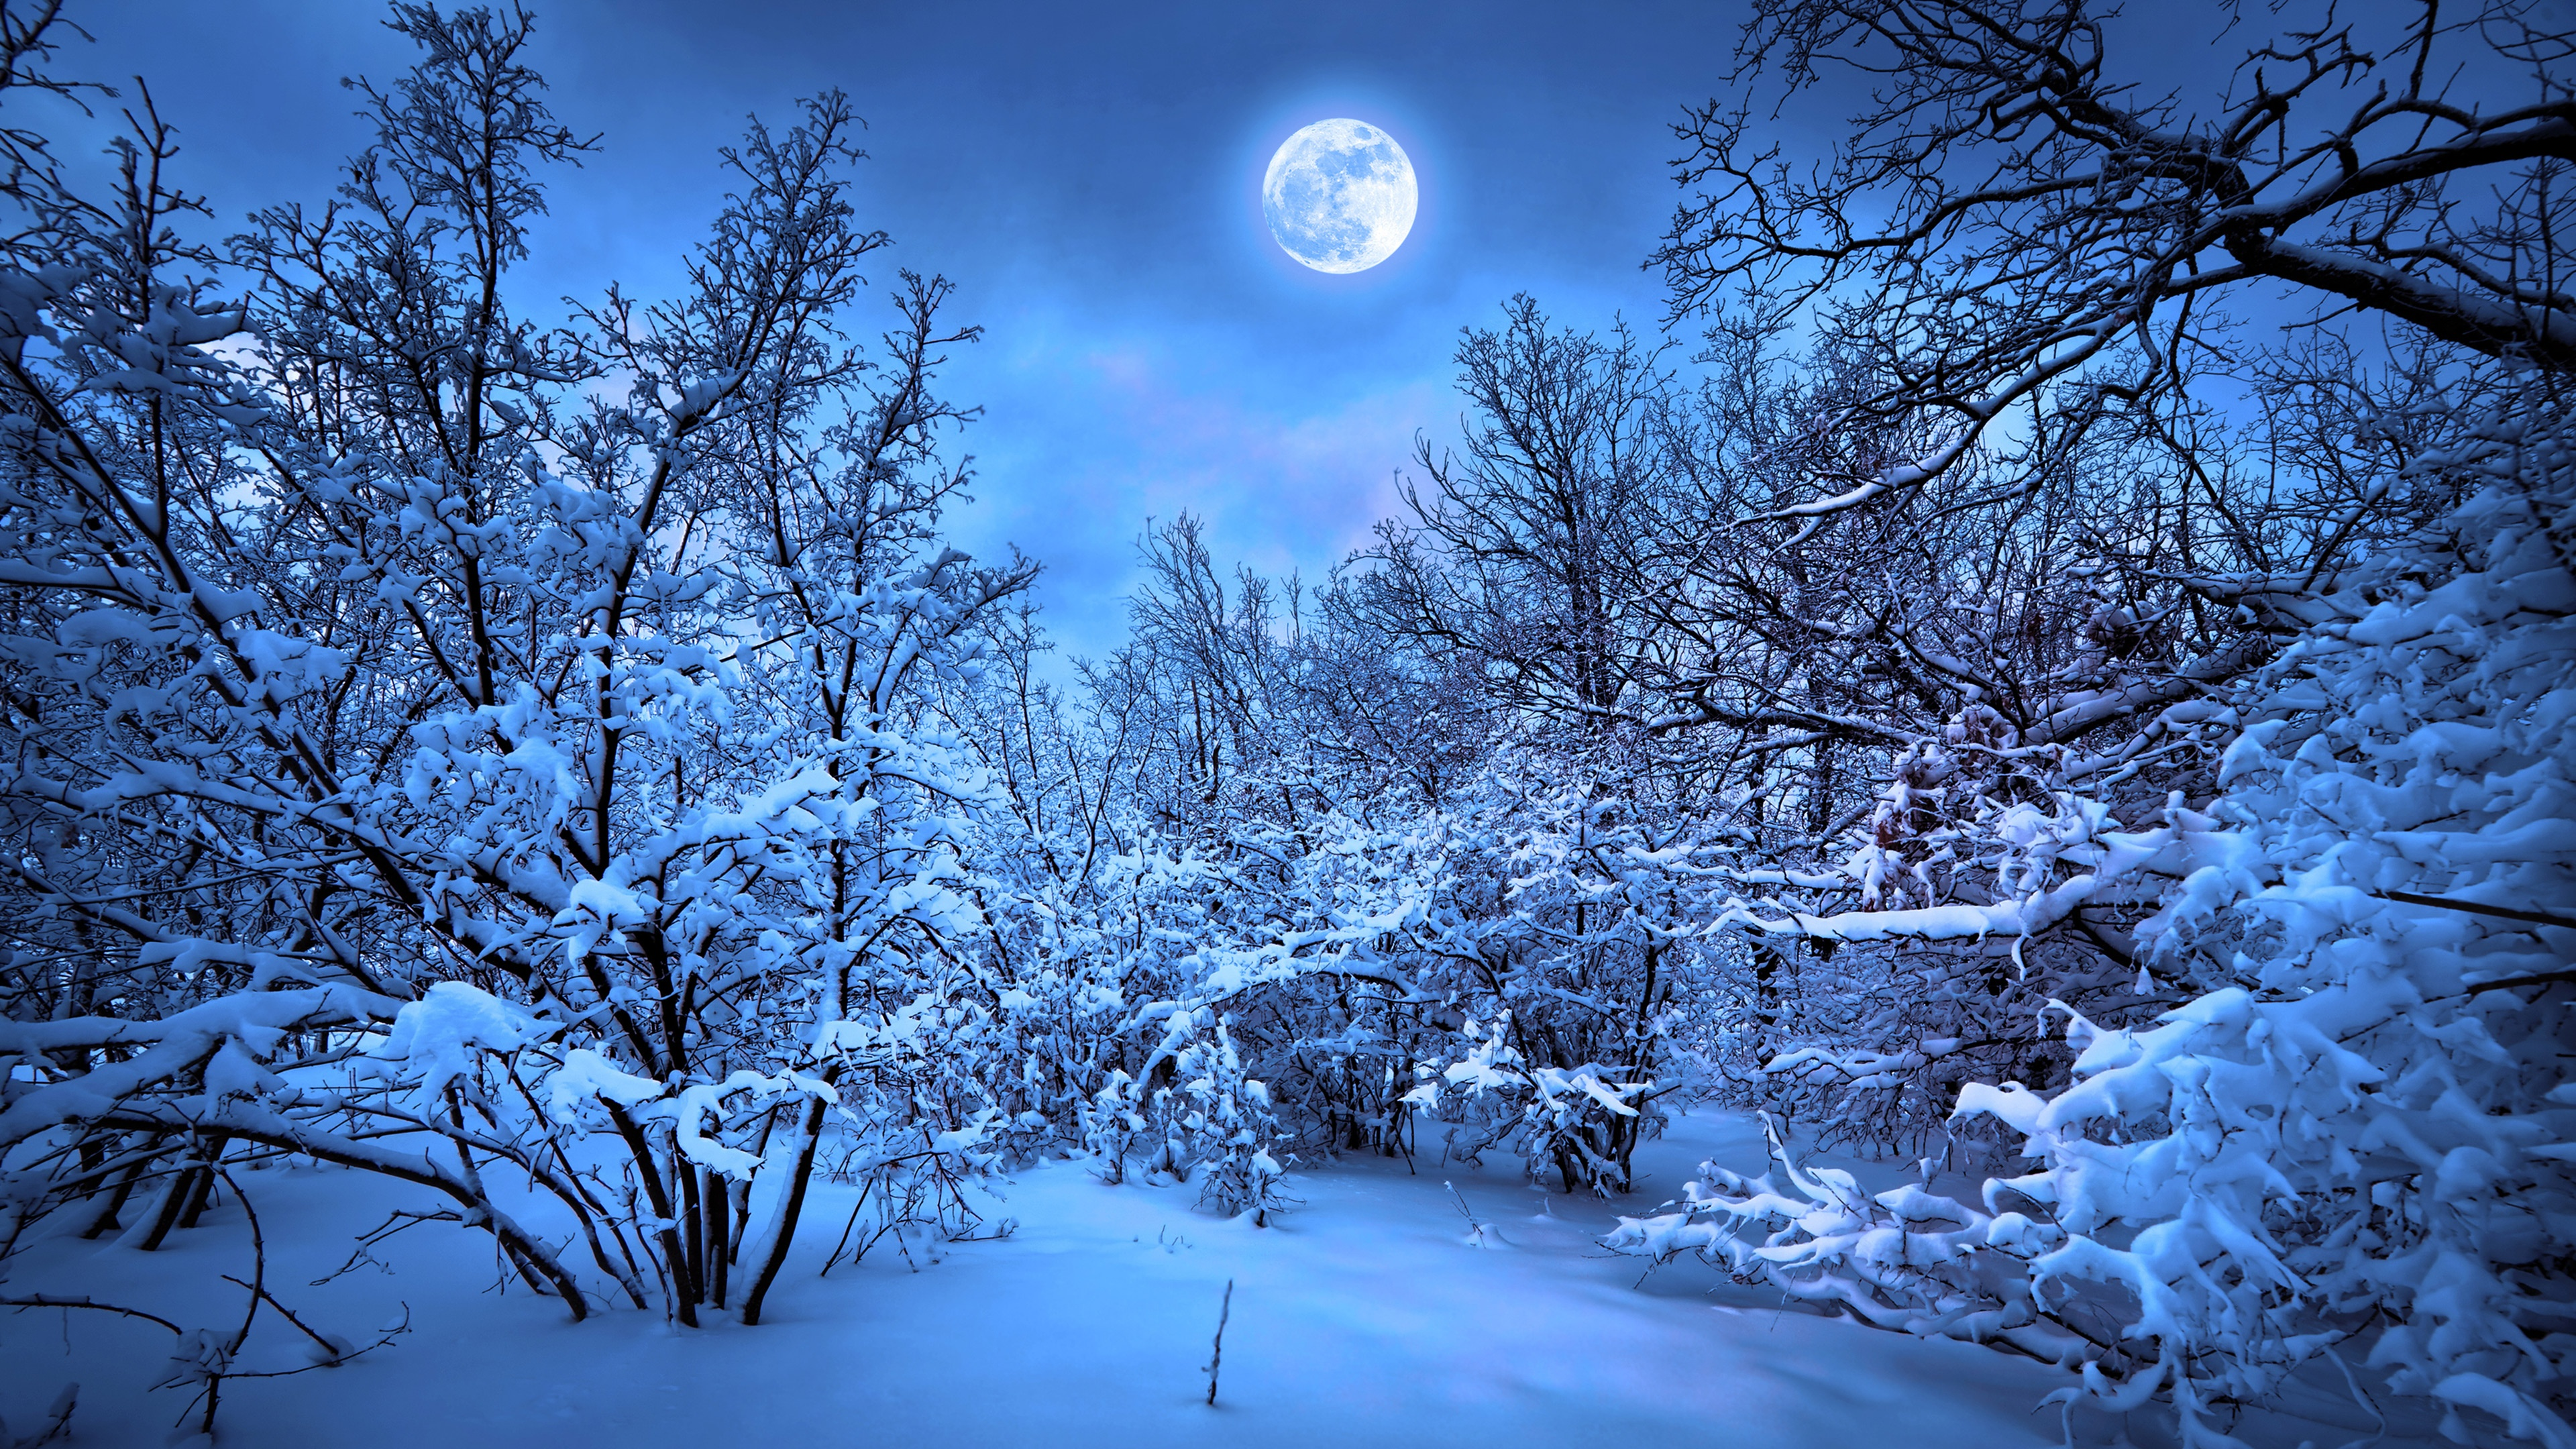 1366x768 winter snow nature 4k 1366x768 resolution hd 4k wallpapers